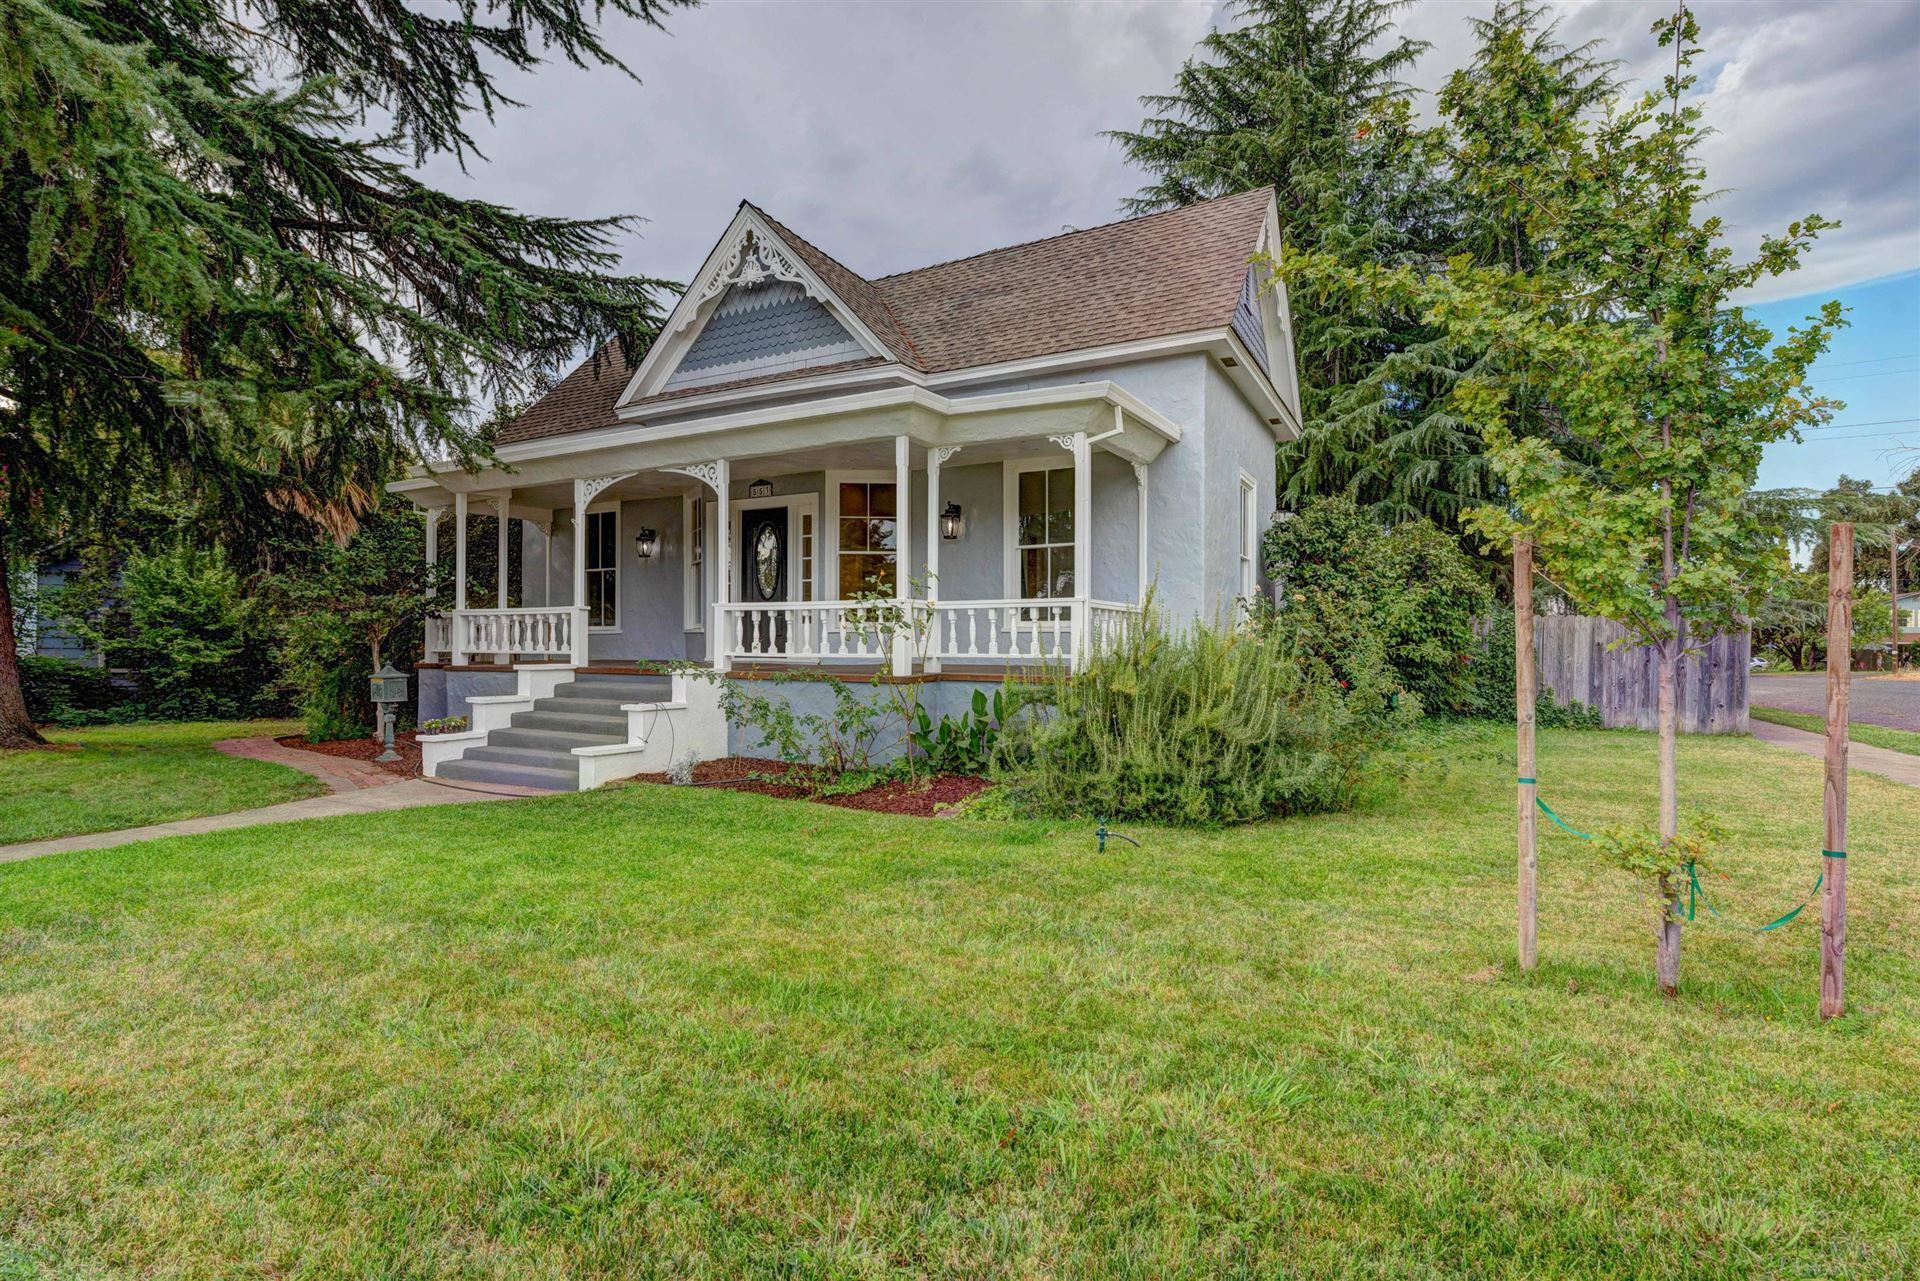 553 Lincoln St, Red Bluff, CA 96080 - MLS#: 19-4813